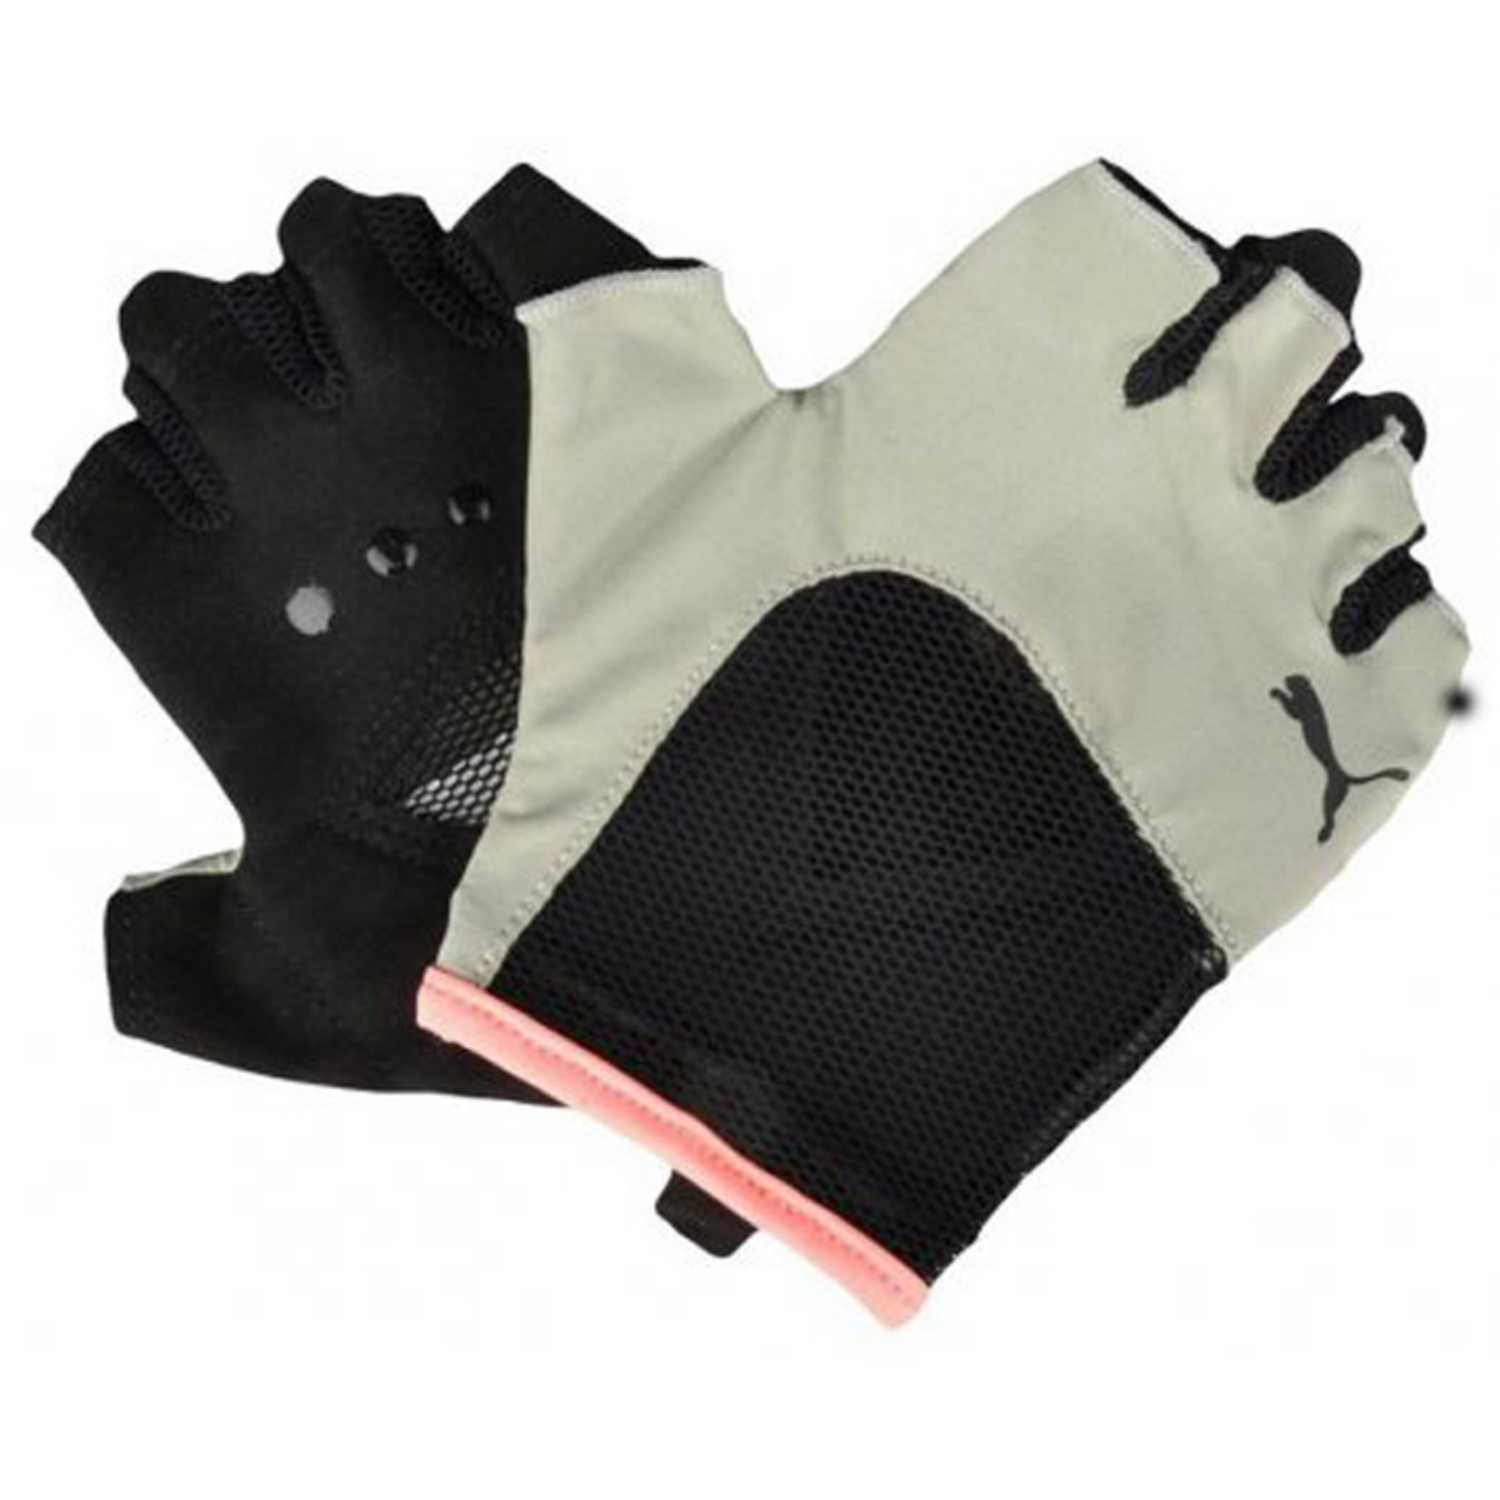 Puma gym gloves Gris negro Guantes |